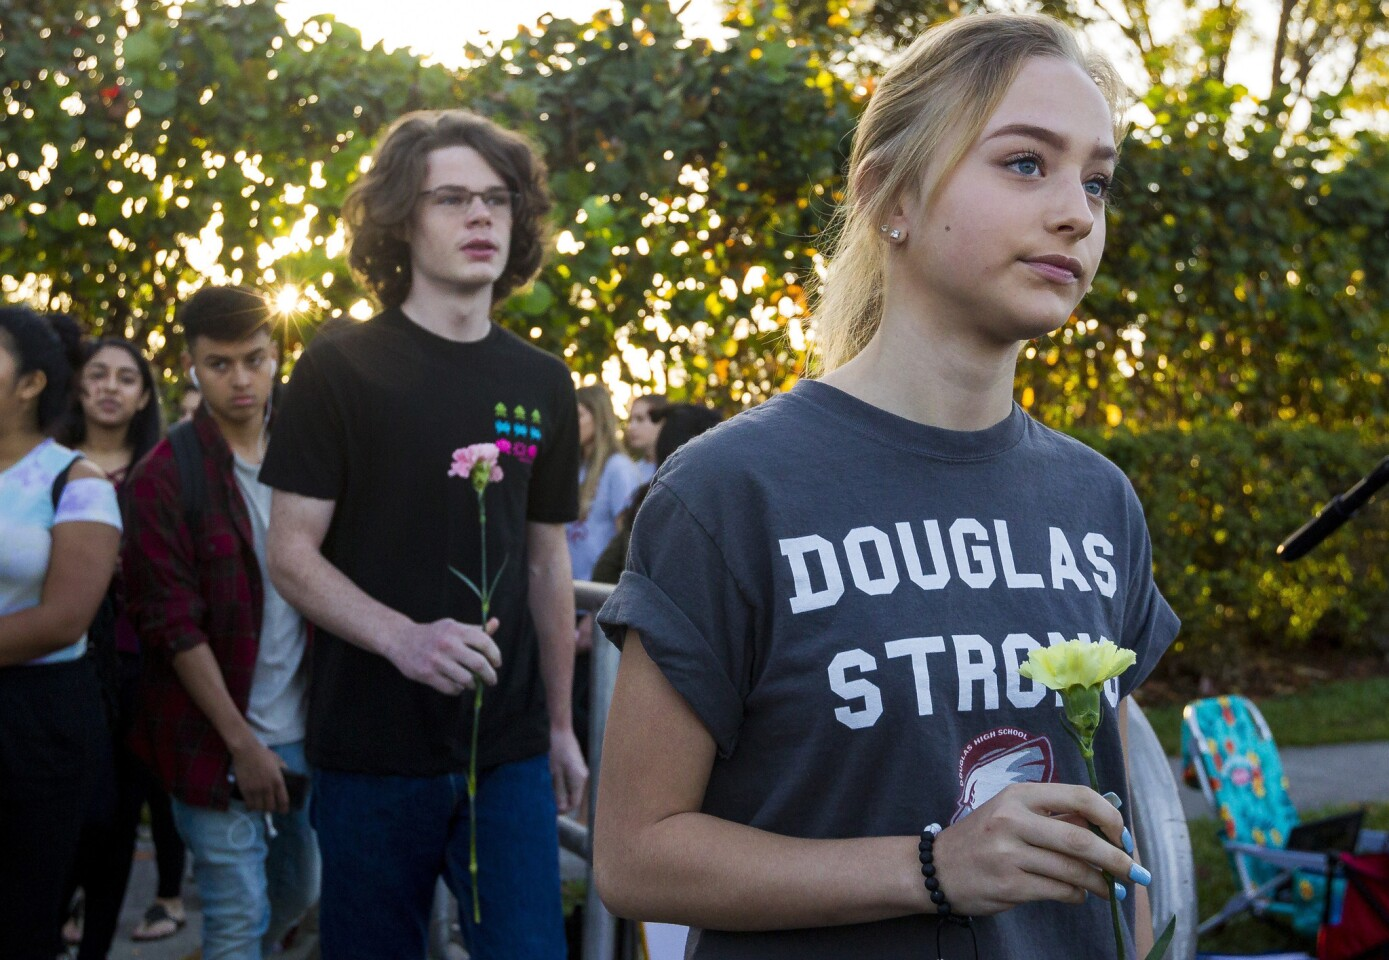 Students were greeted by supporters, signs and flowers as they returned to class at Marjory Stoneman Douglas High School on Wednesday.